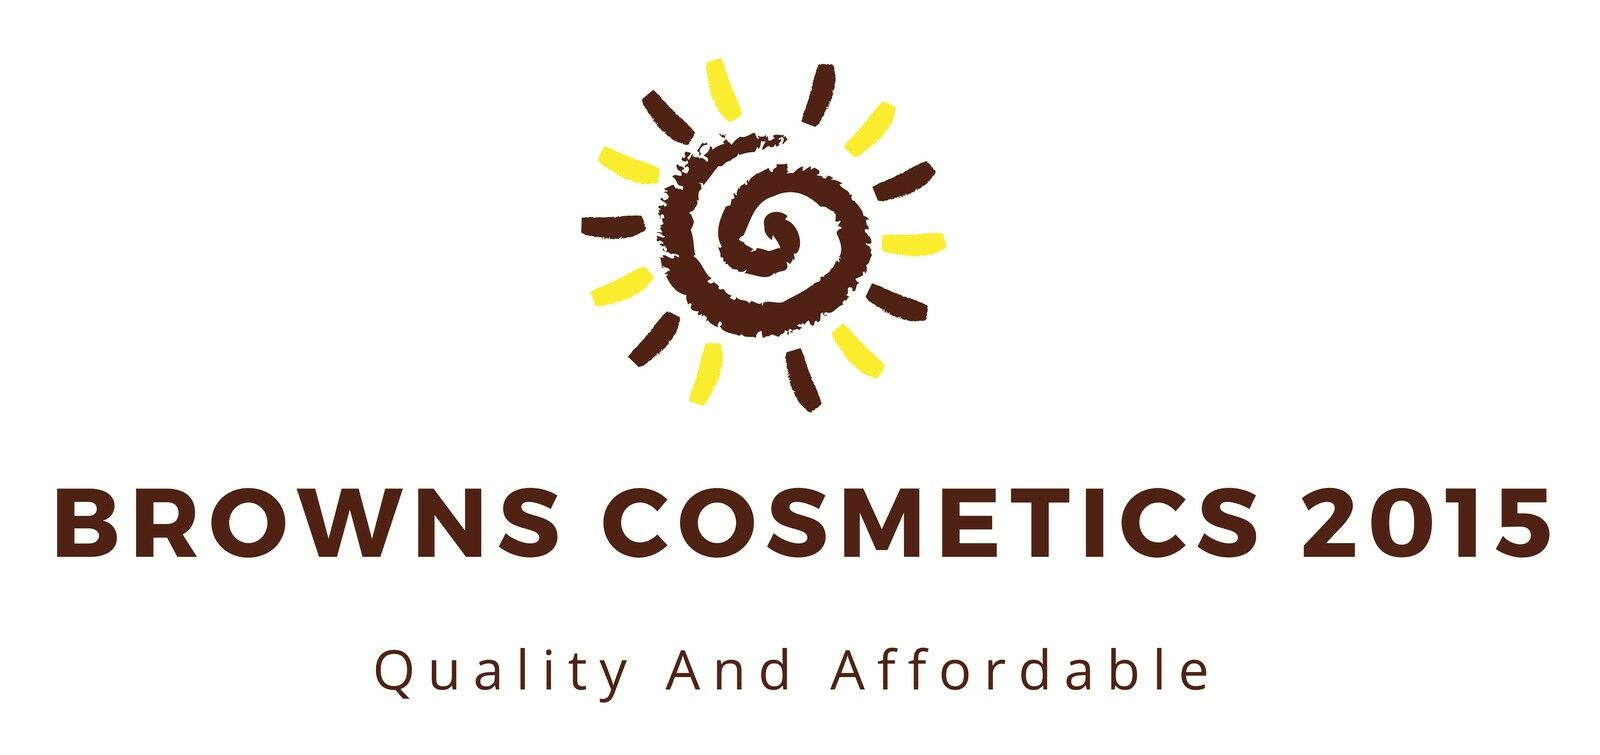 Browns Cosmetics